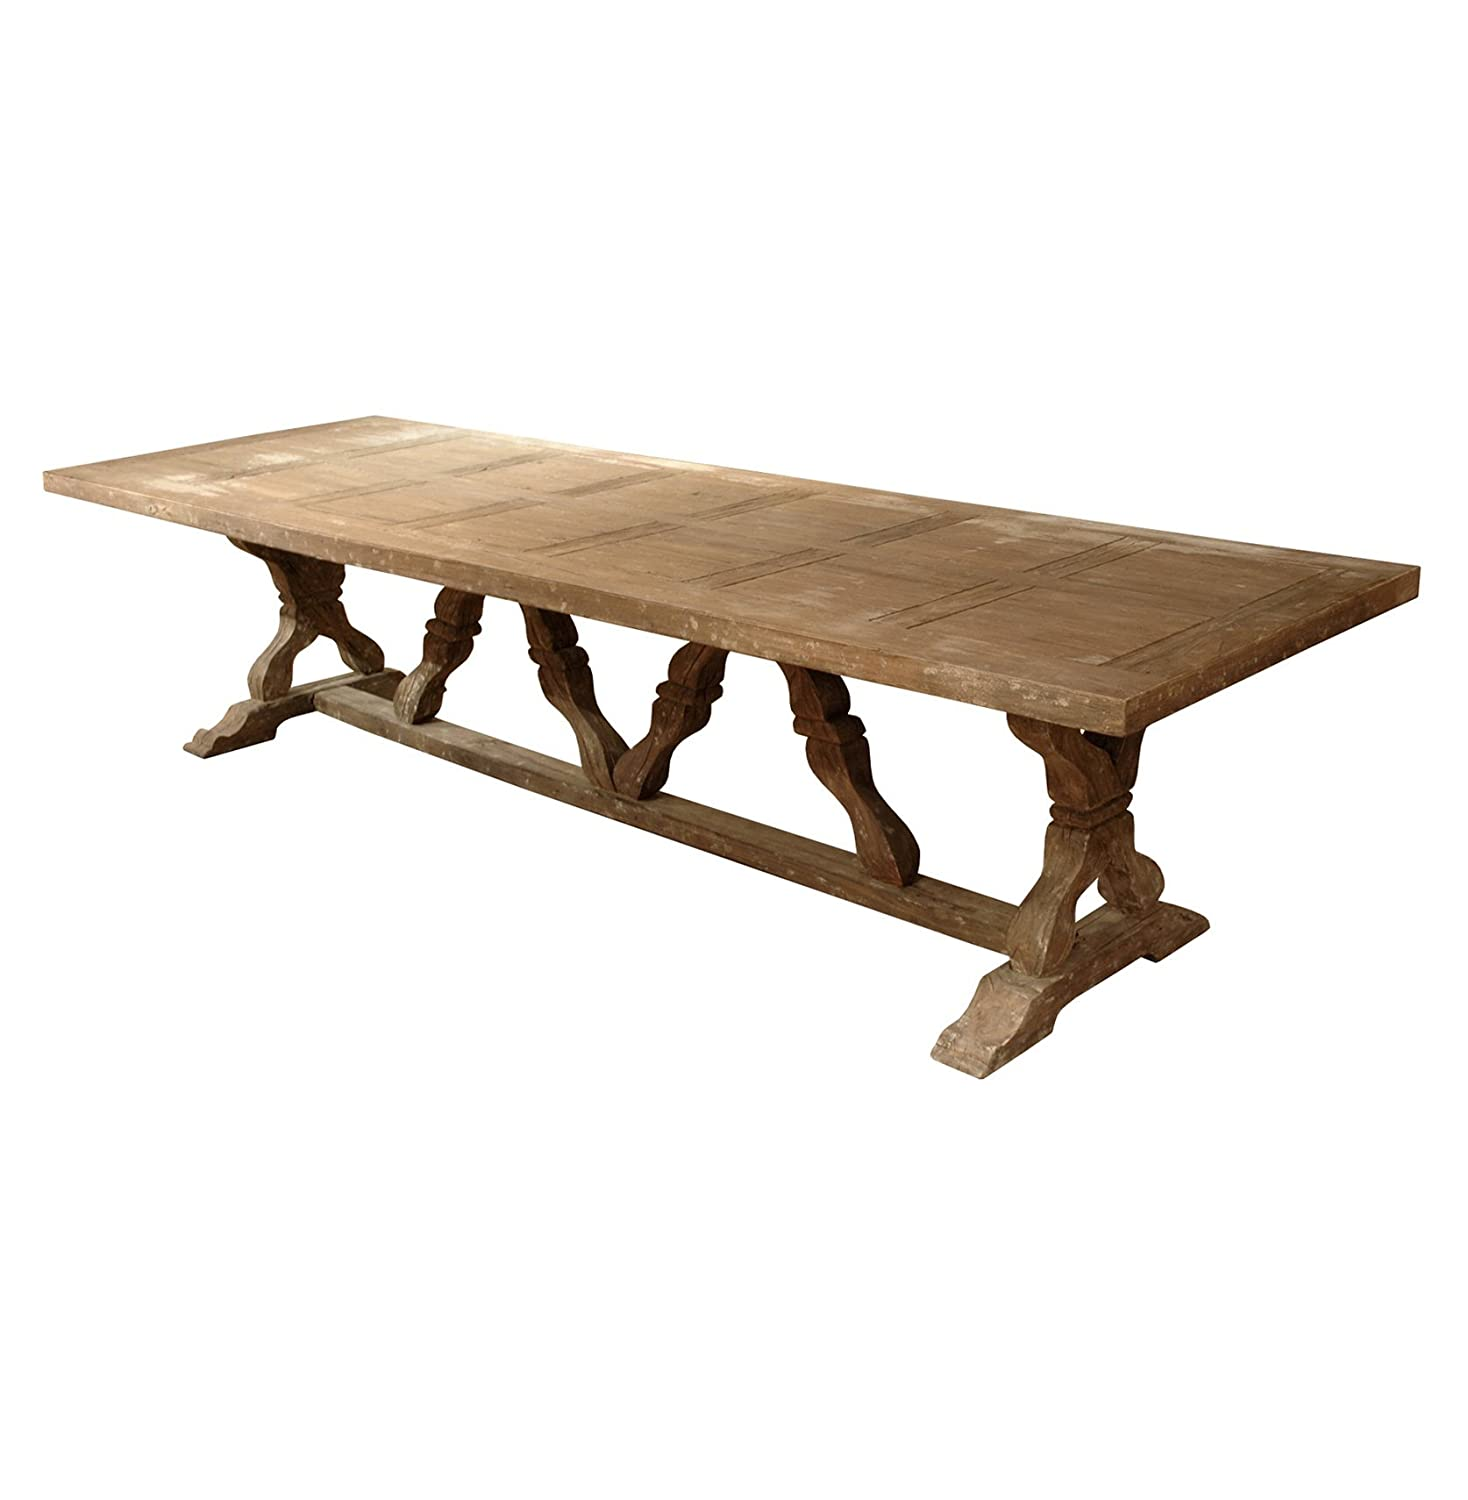 Distressed Reclaimed Elm Farmhouse Dining Table